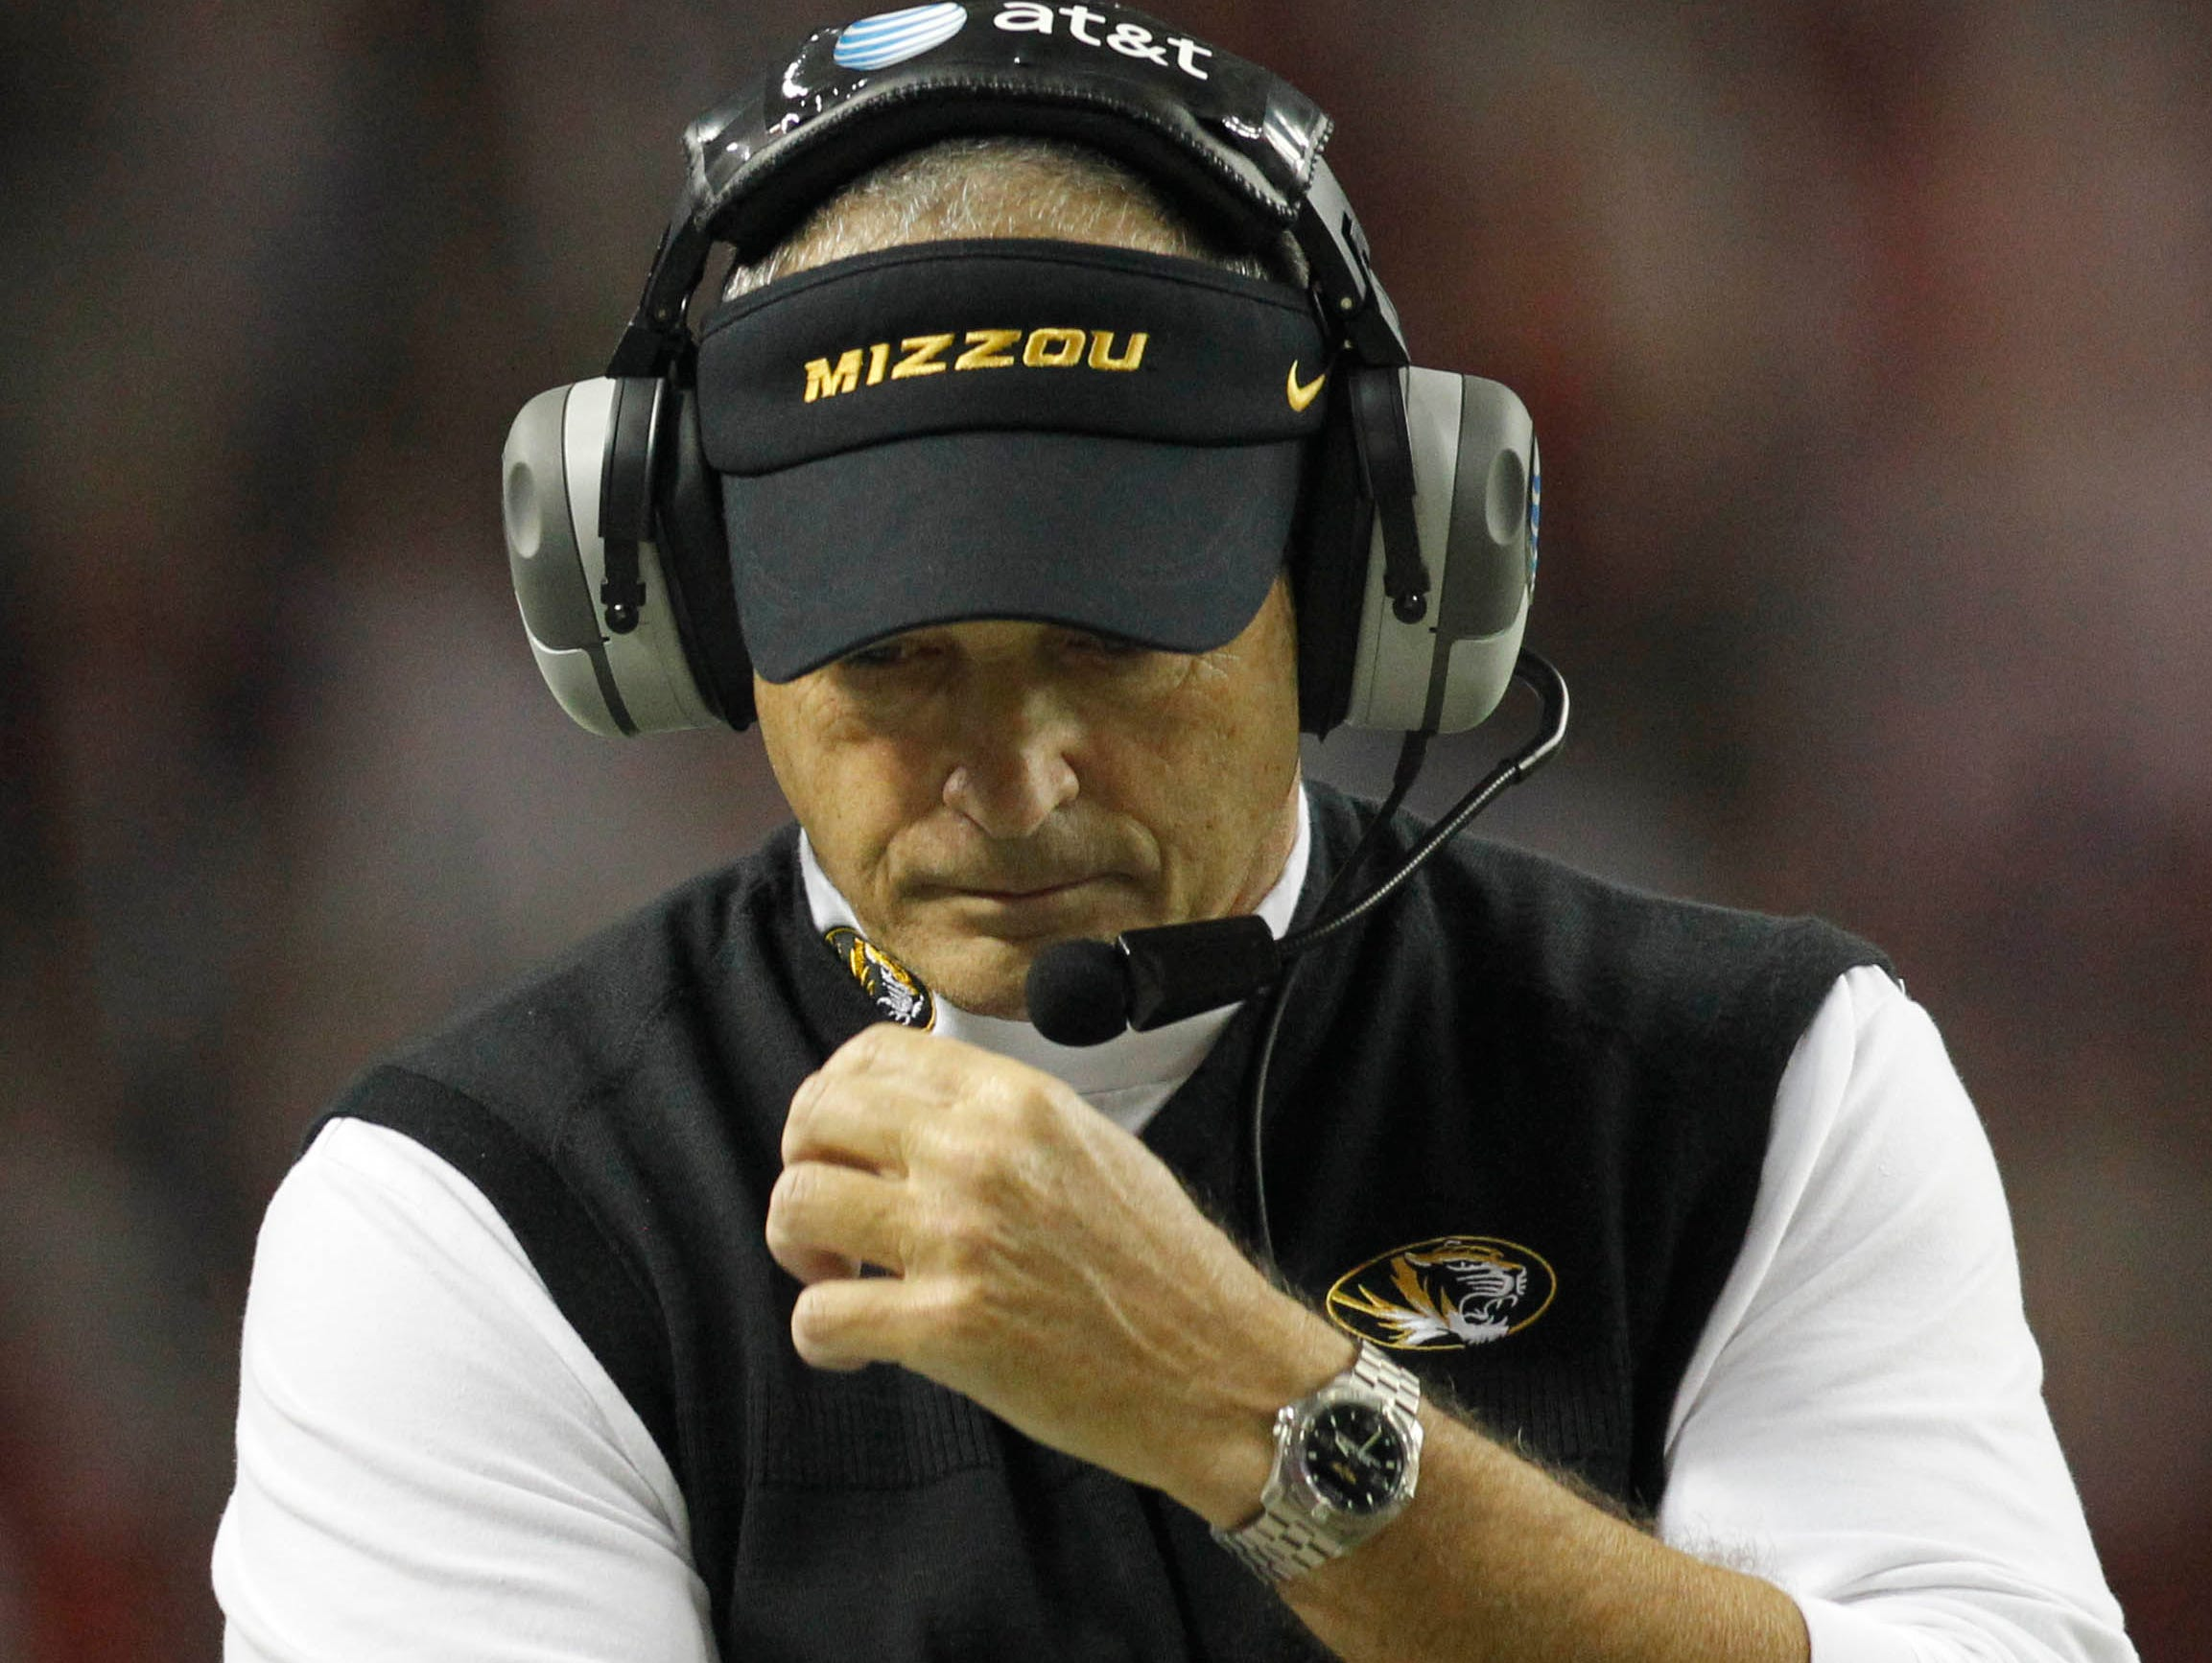 Missouri head coach Gary Pinkel on the sideline against Alabama in the first quarter of the 2014 SEC Championship Game.